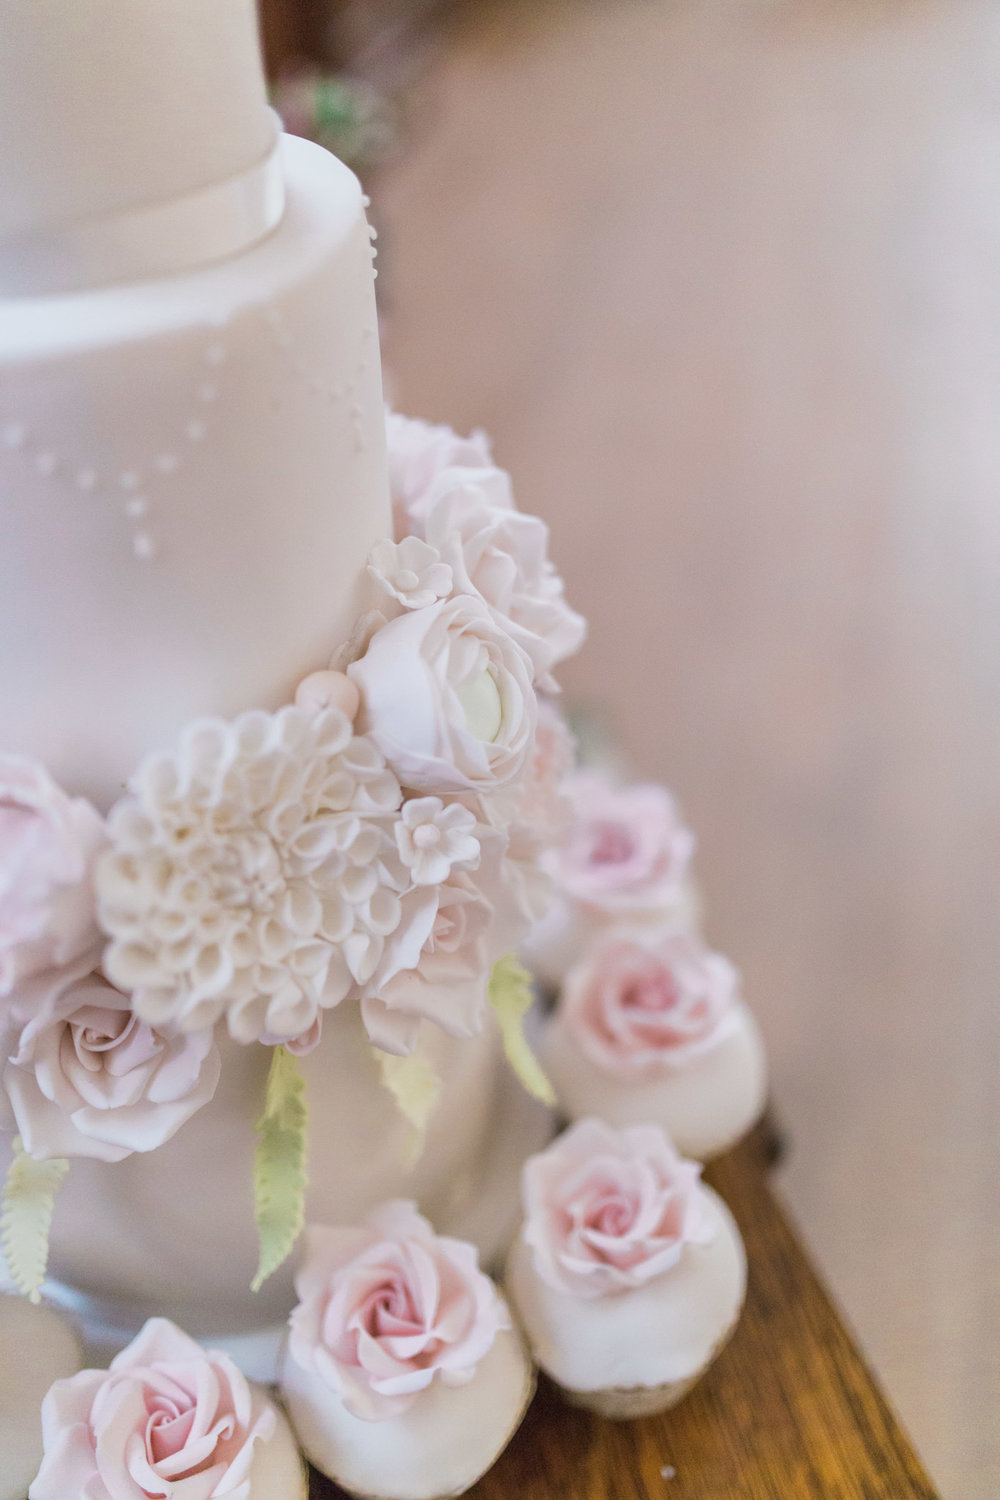 There was some subtle royal icing detail work on the tiers just to give the eye a little some extra to catch! The cake was surrounded by luxury domed cupakes, each with an individual sugar rose and a beautiful lacey wrapper.